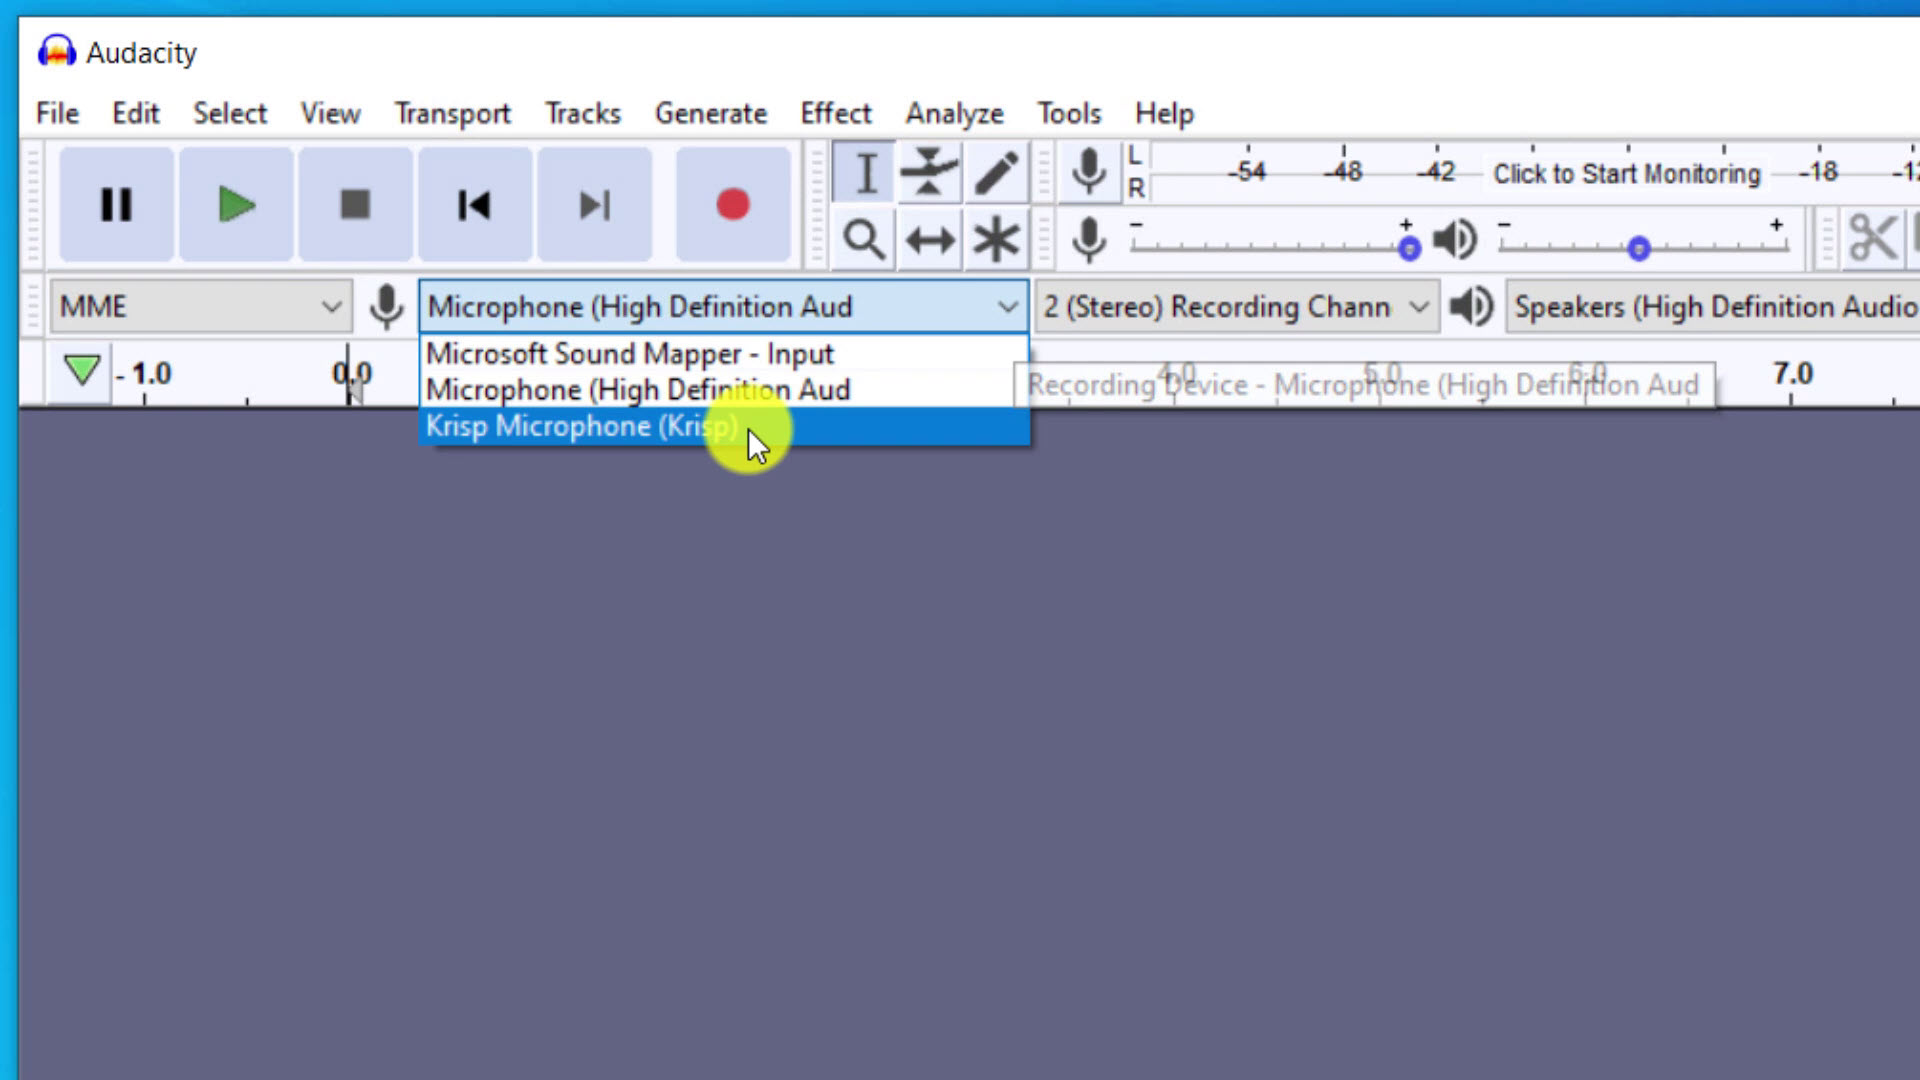 Use Krisp to reduce noise when recording audio in Audacity